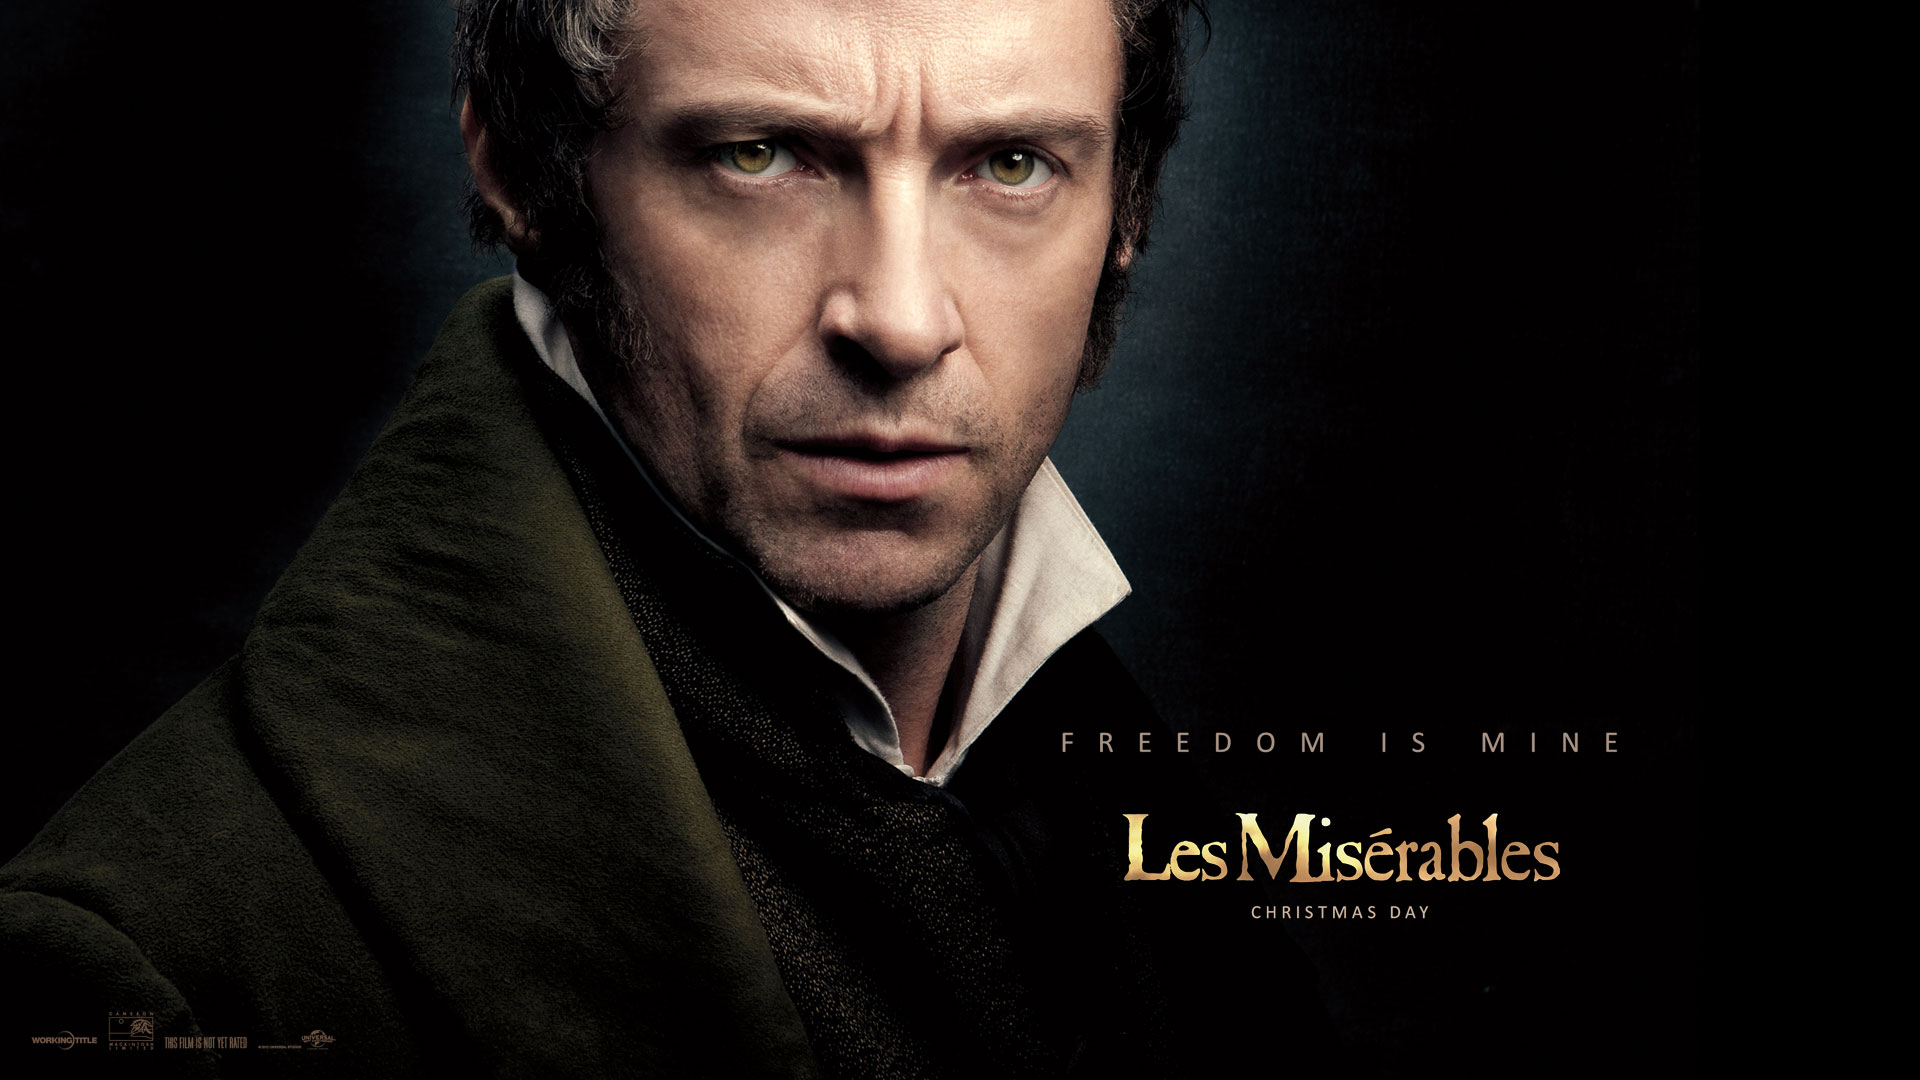 Les Misérables 2012 movie